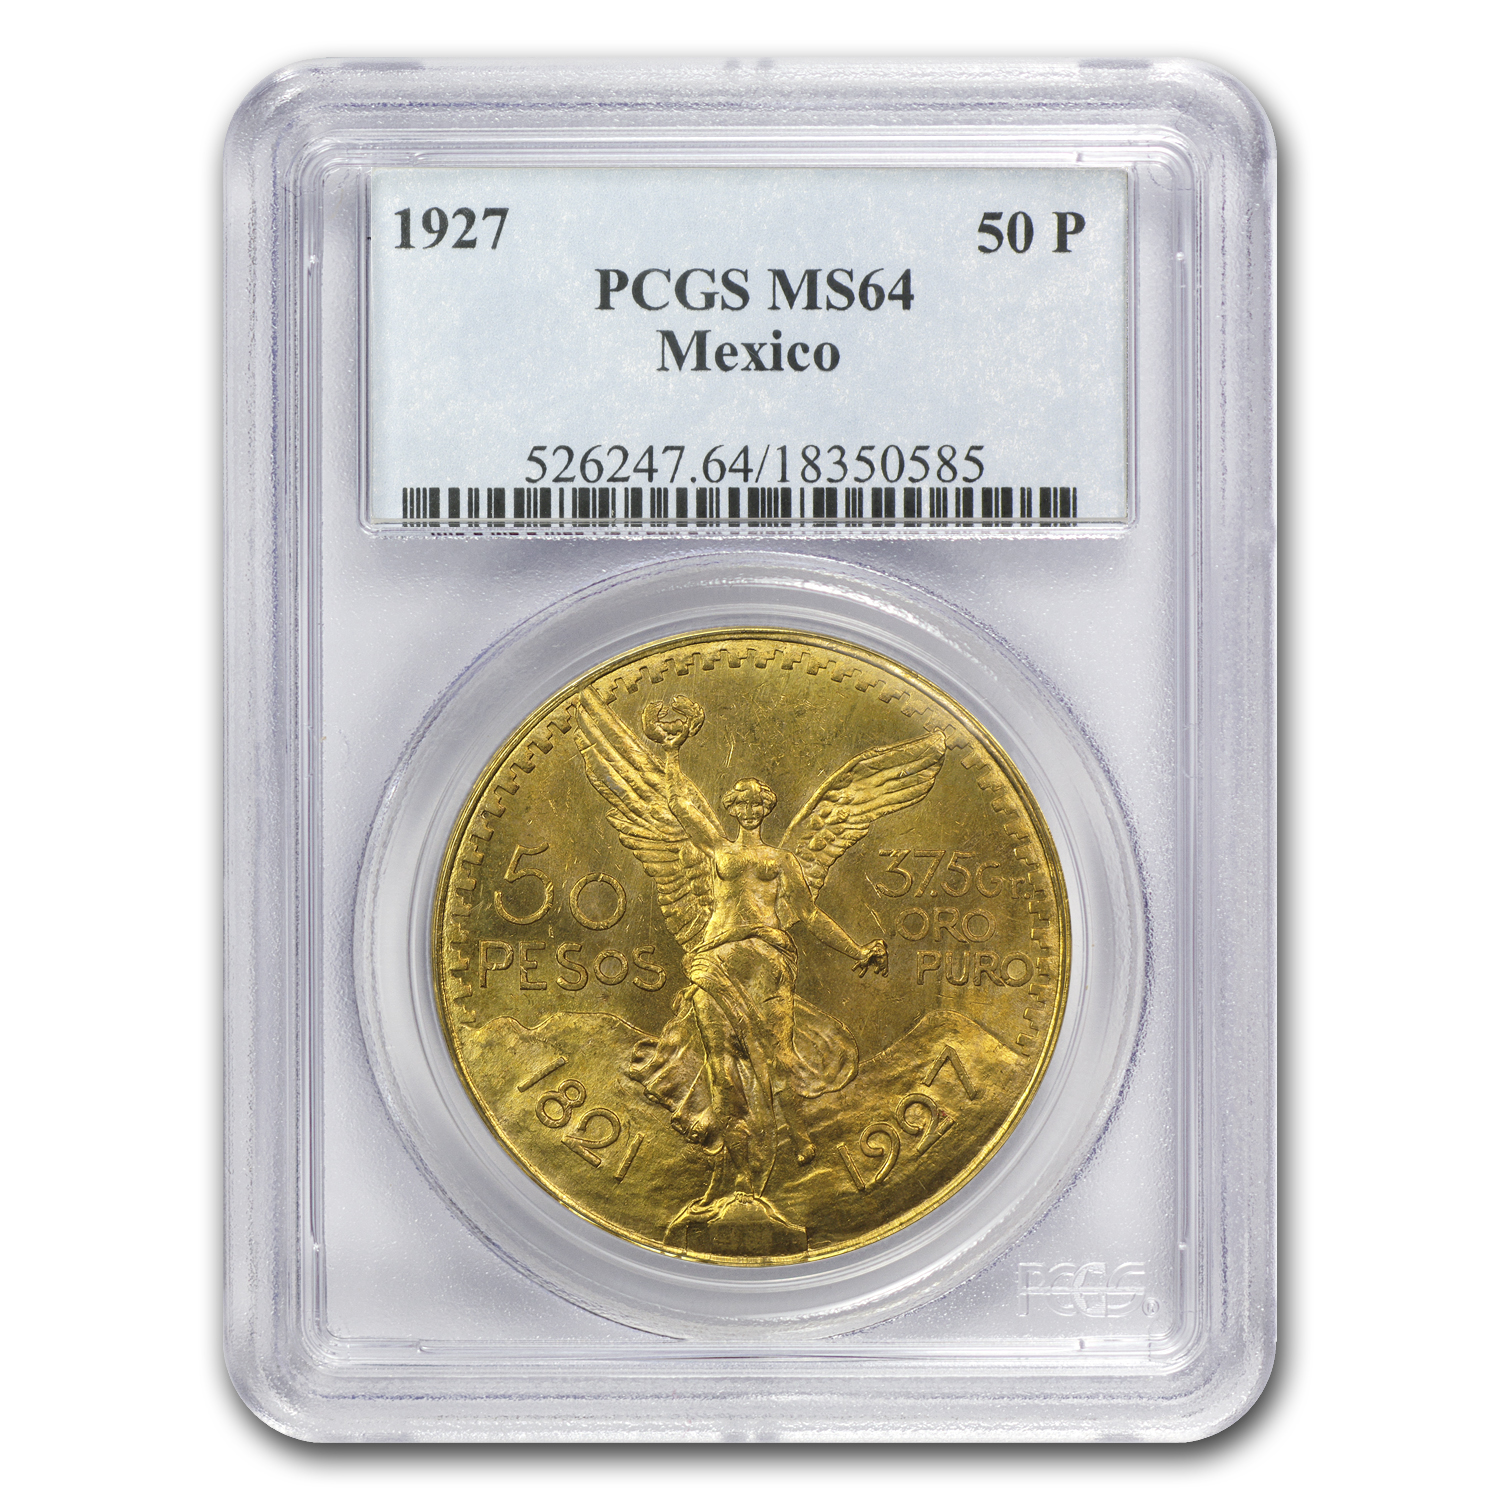 1927 Mexico Gold 50 Pesos MS-64 PCGS